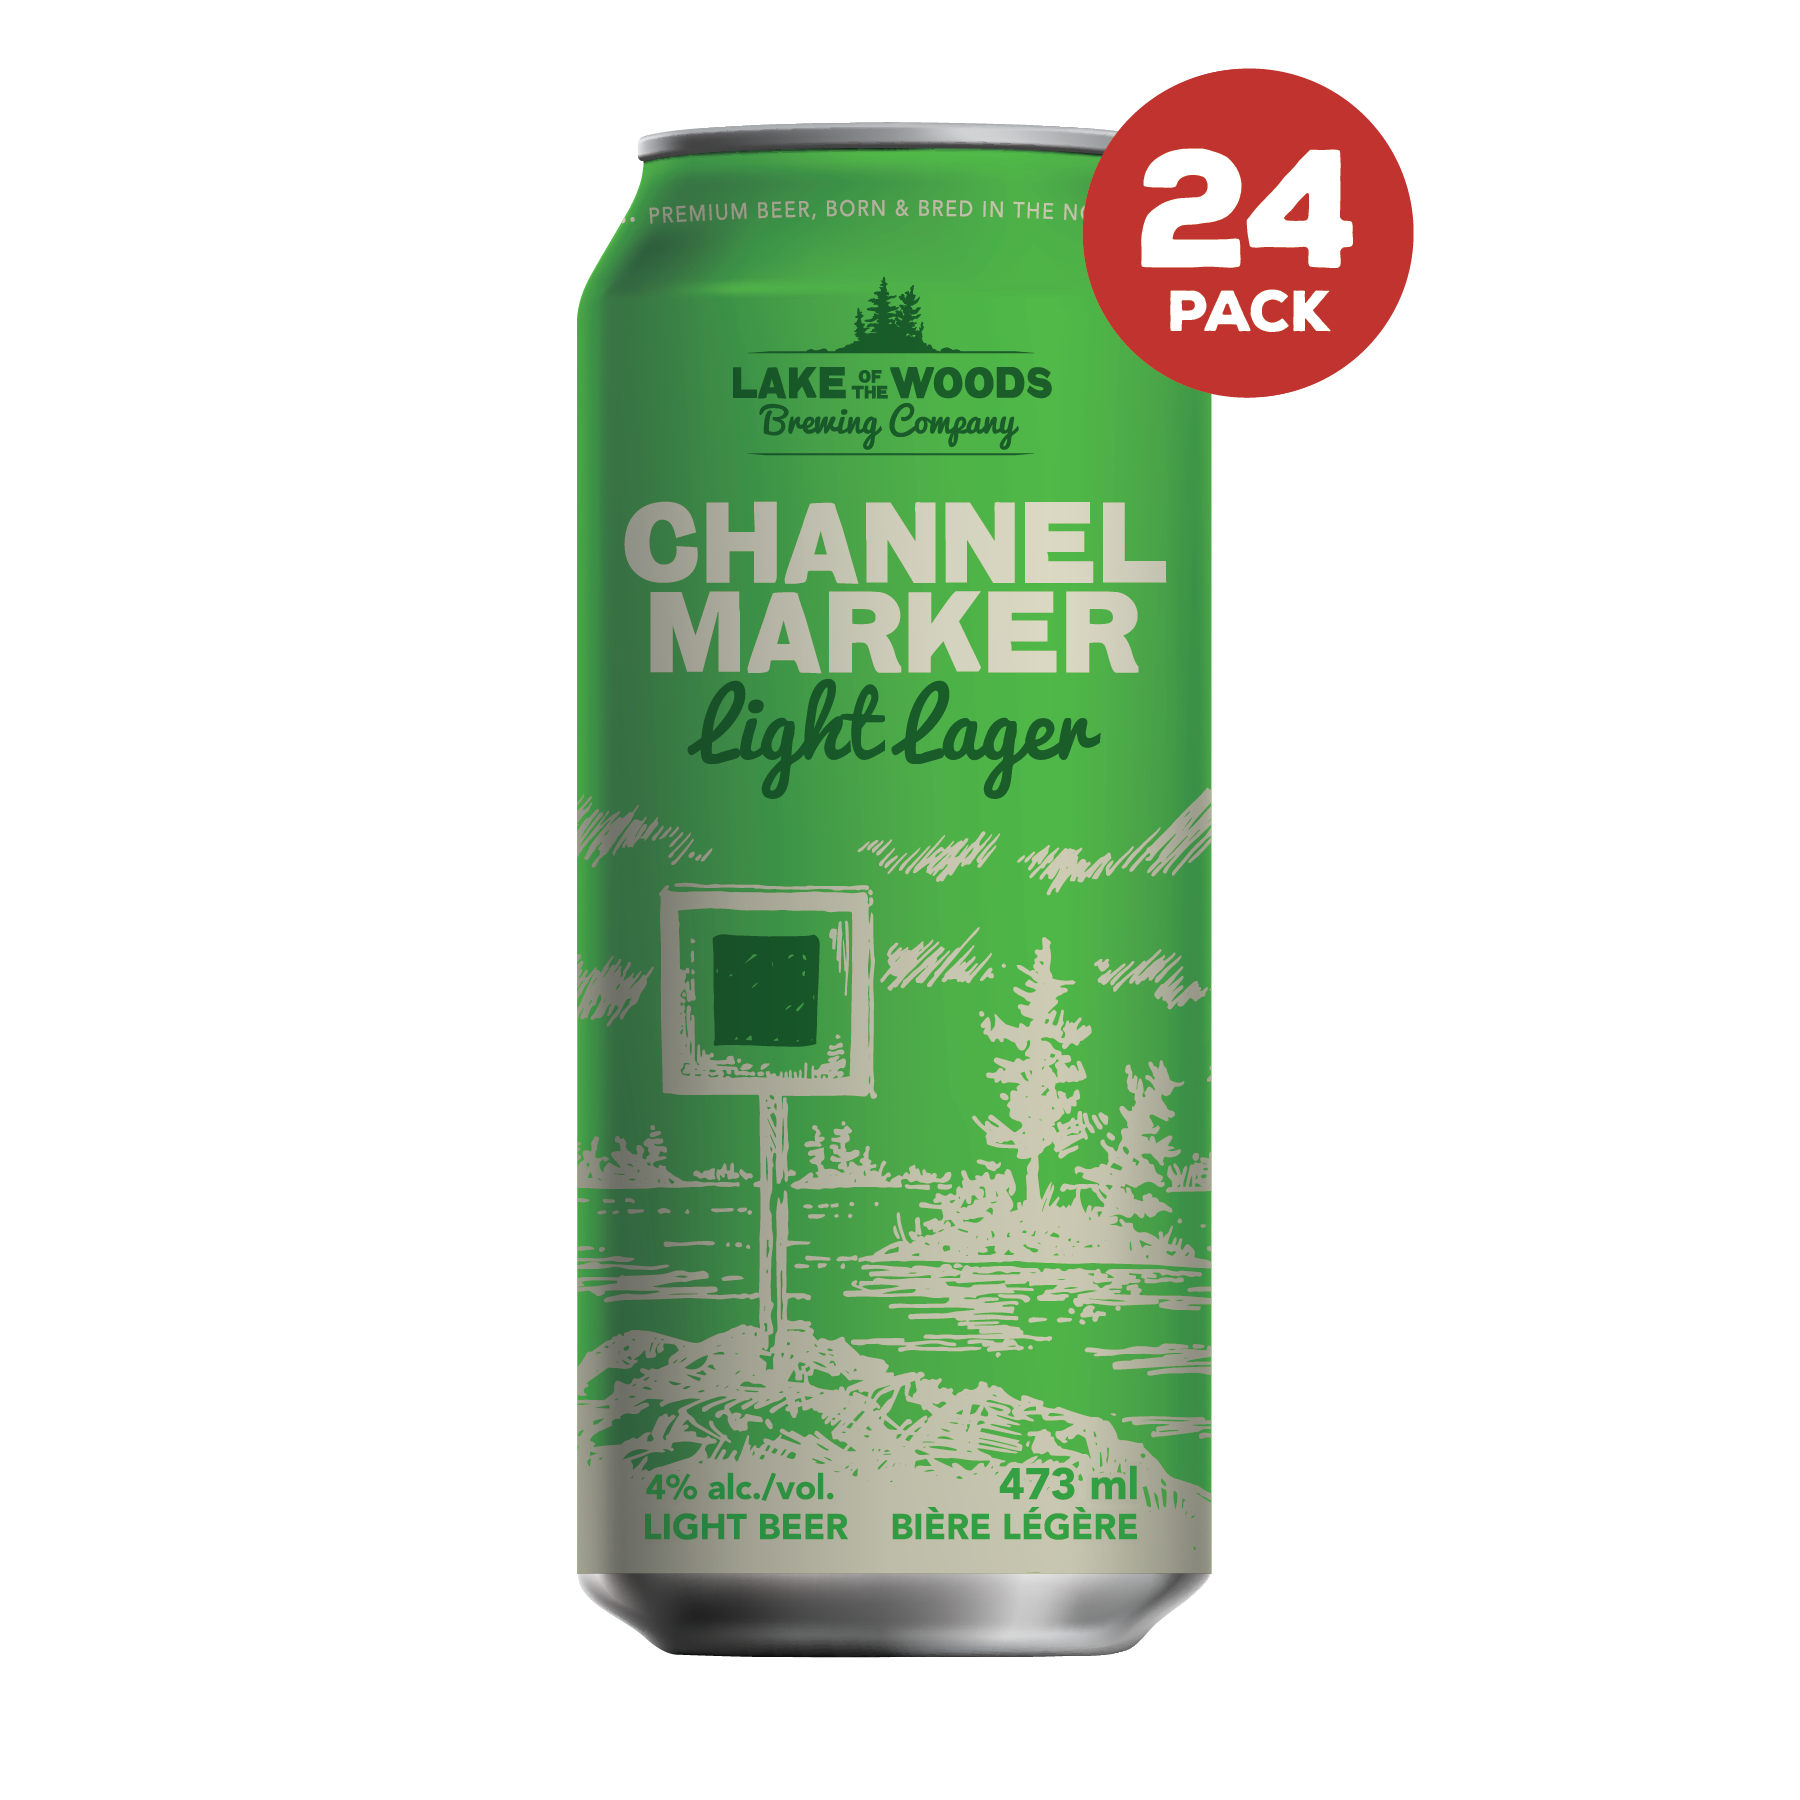 Channel Marker 24 Pack